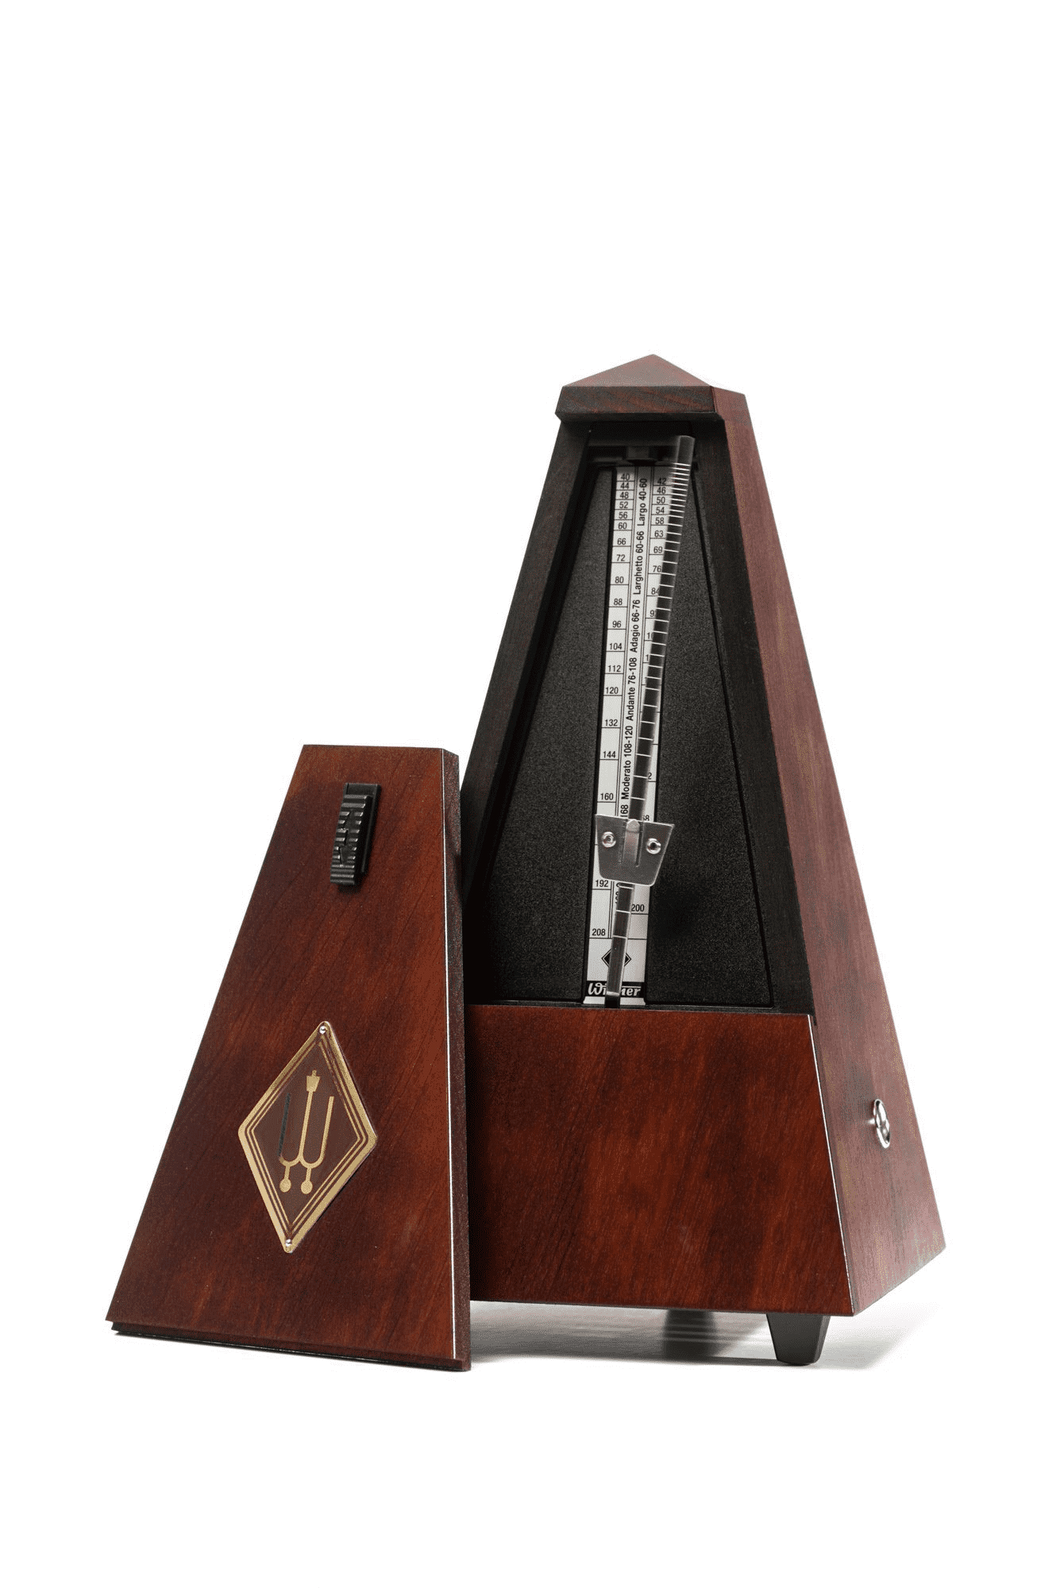 Wittner Maelzel Metronome without Bell - Mahogany